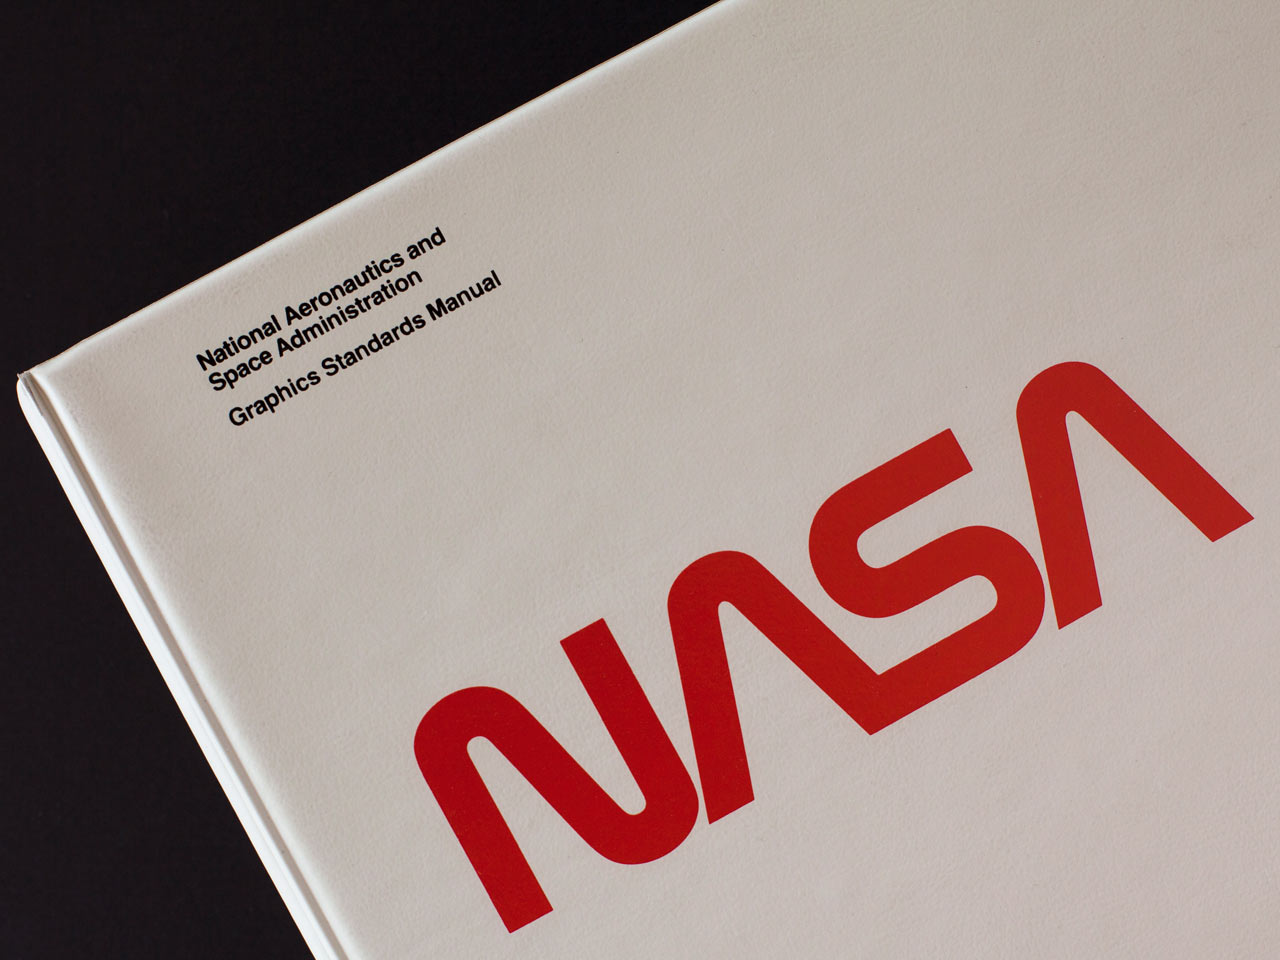 NASA's 1975 Graphics Standards Manual to be Reissued